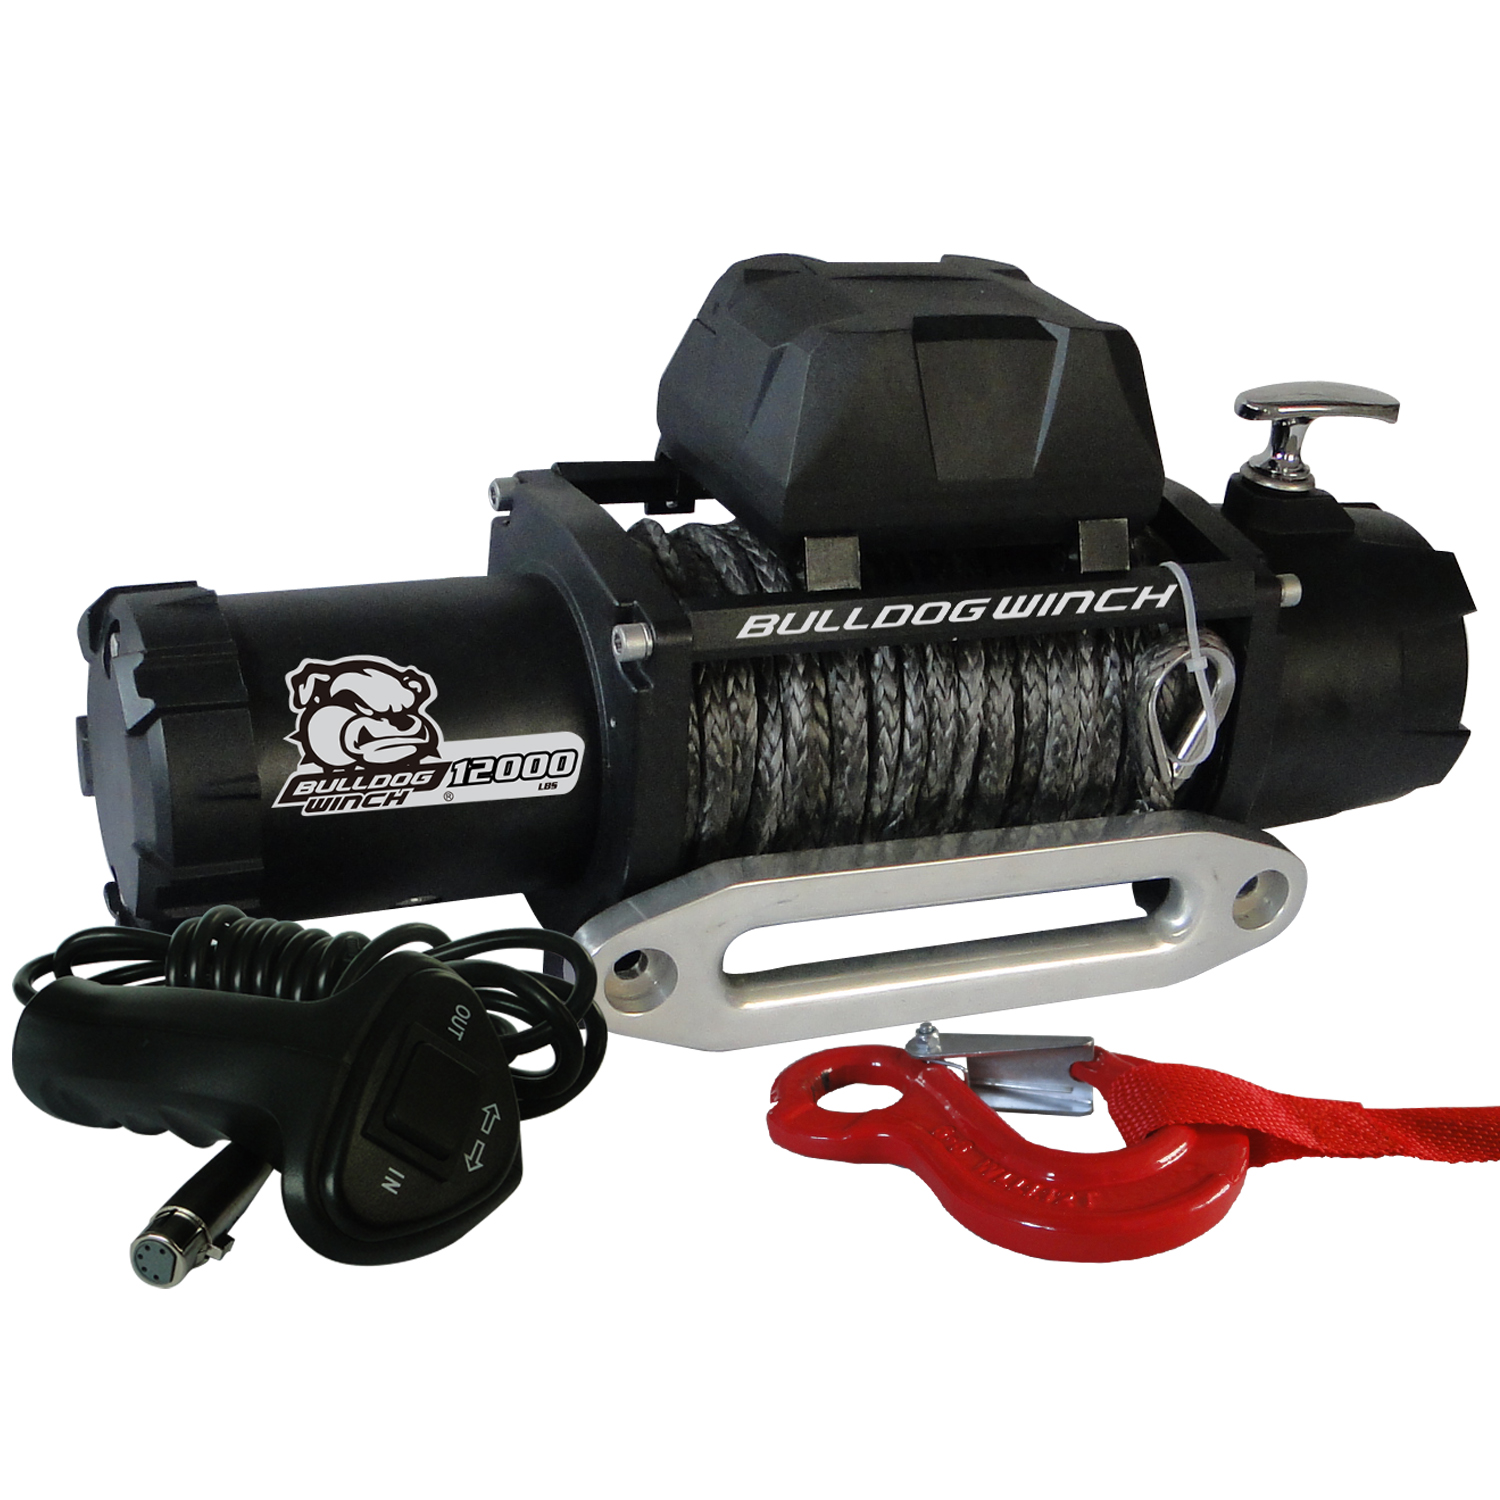 Bulldog Winch 12,000lb Winch w/ 100ft Synthetic Rope